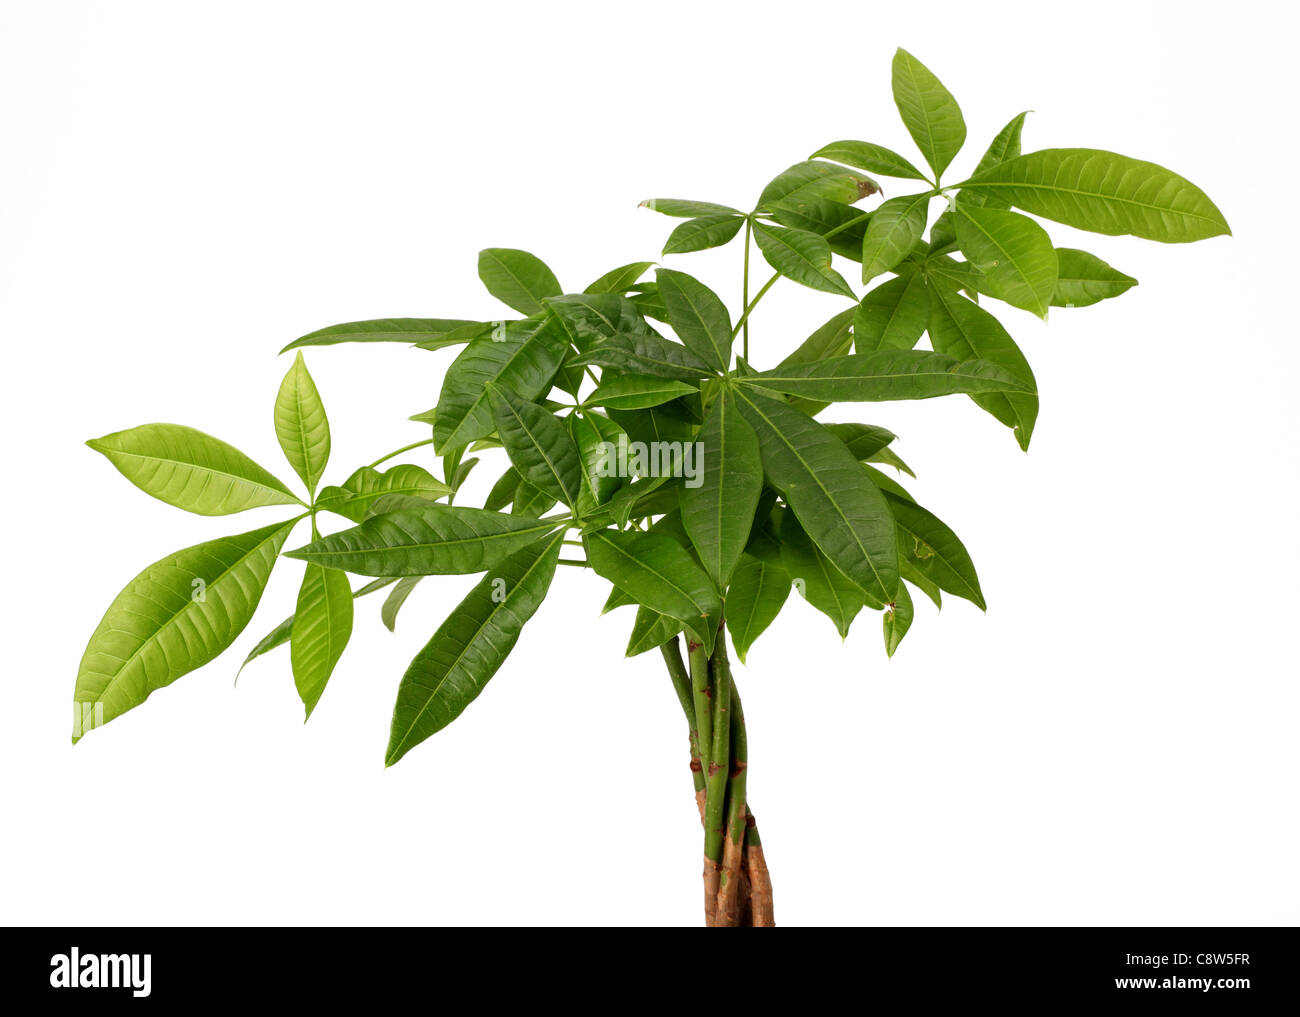 The top of a green house plant. Stock Photo